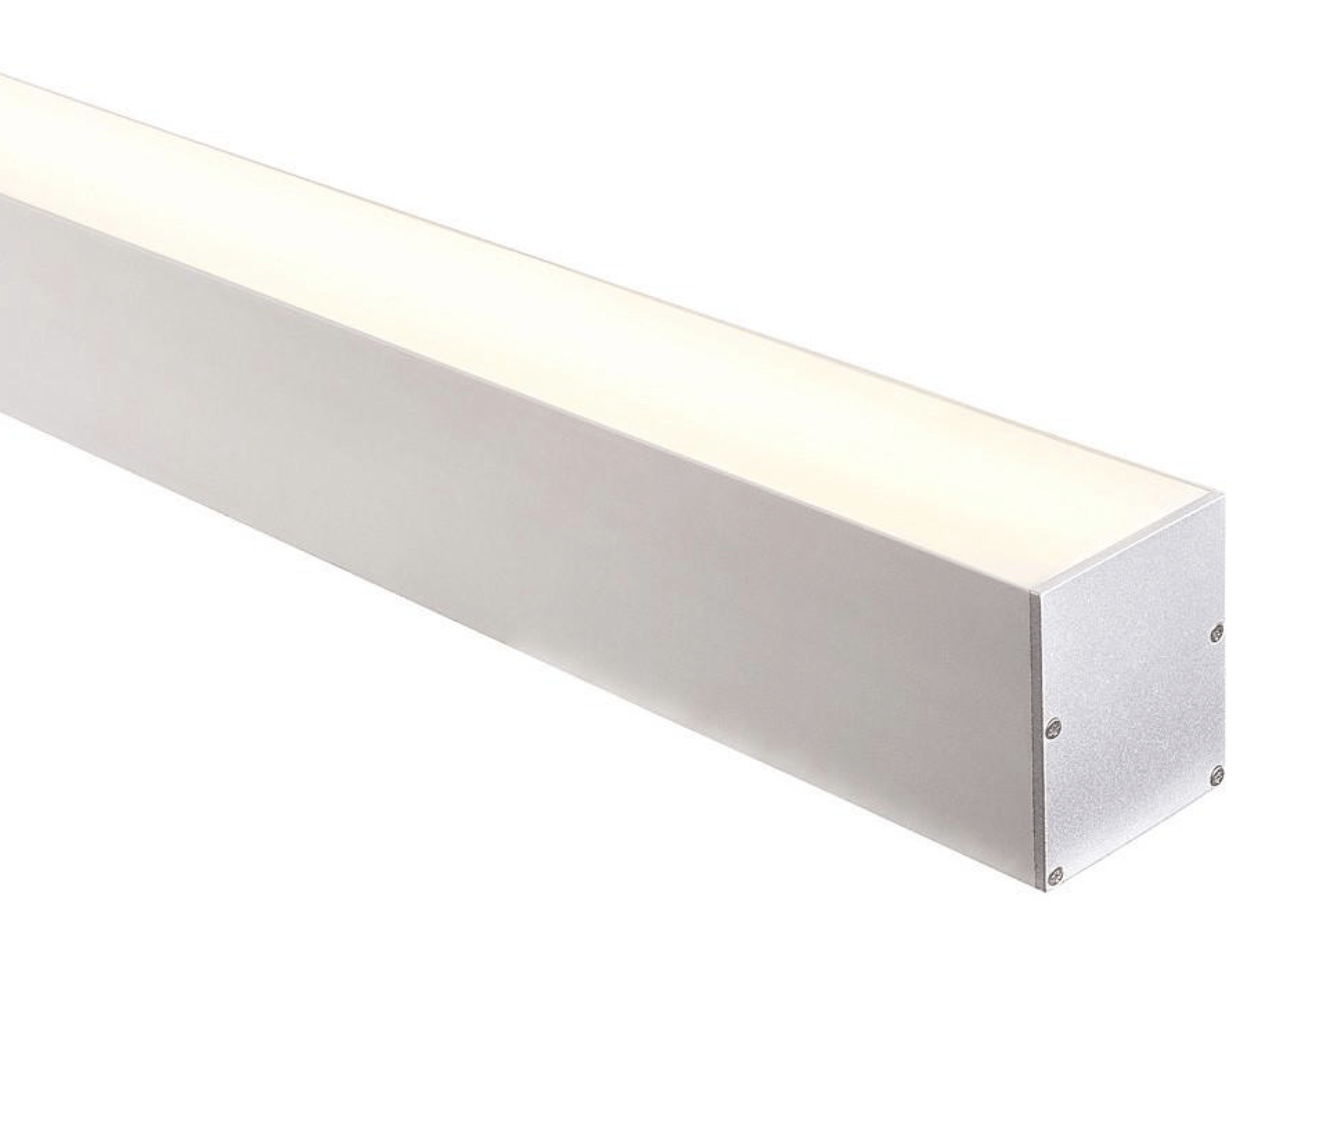 Profiles Suspended Profile - Deep Large Square - HV9693-6070 lighting shops lighting stores LED lights  lighting designer